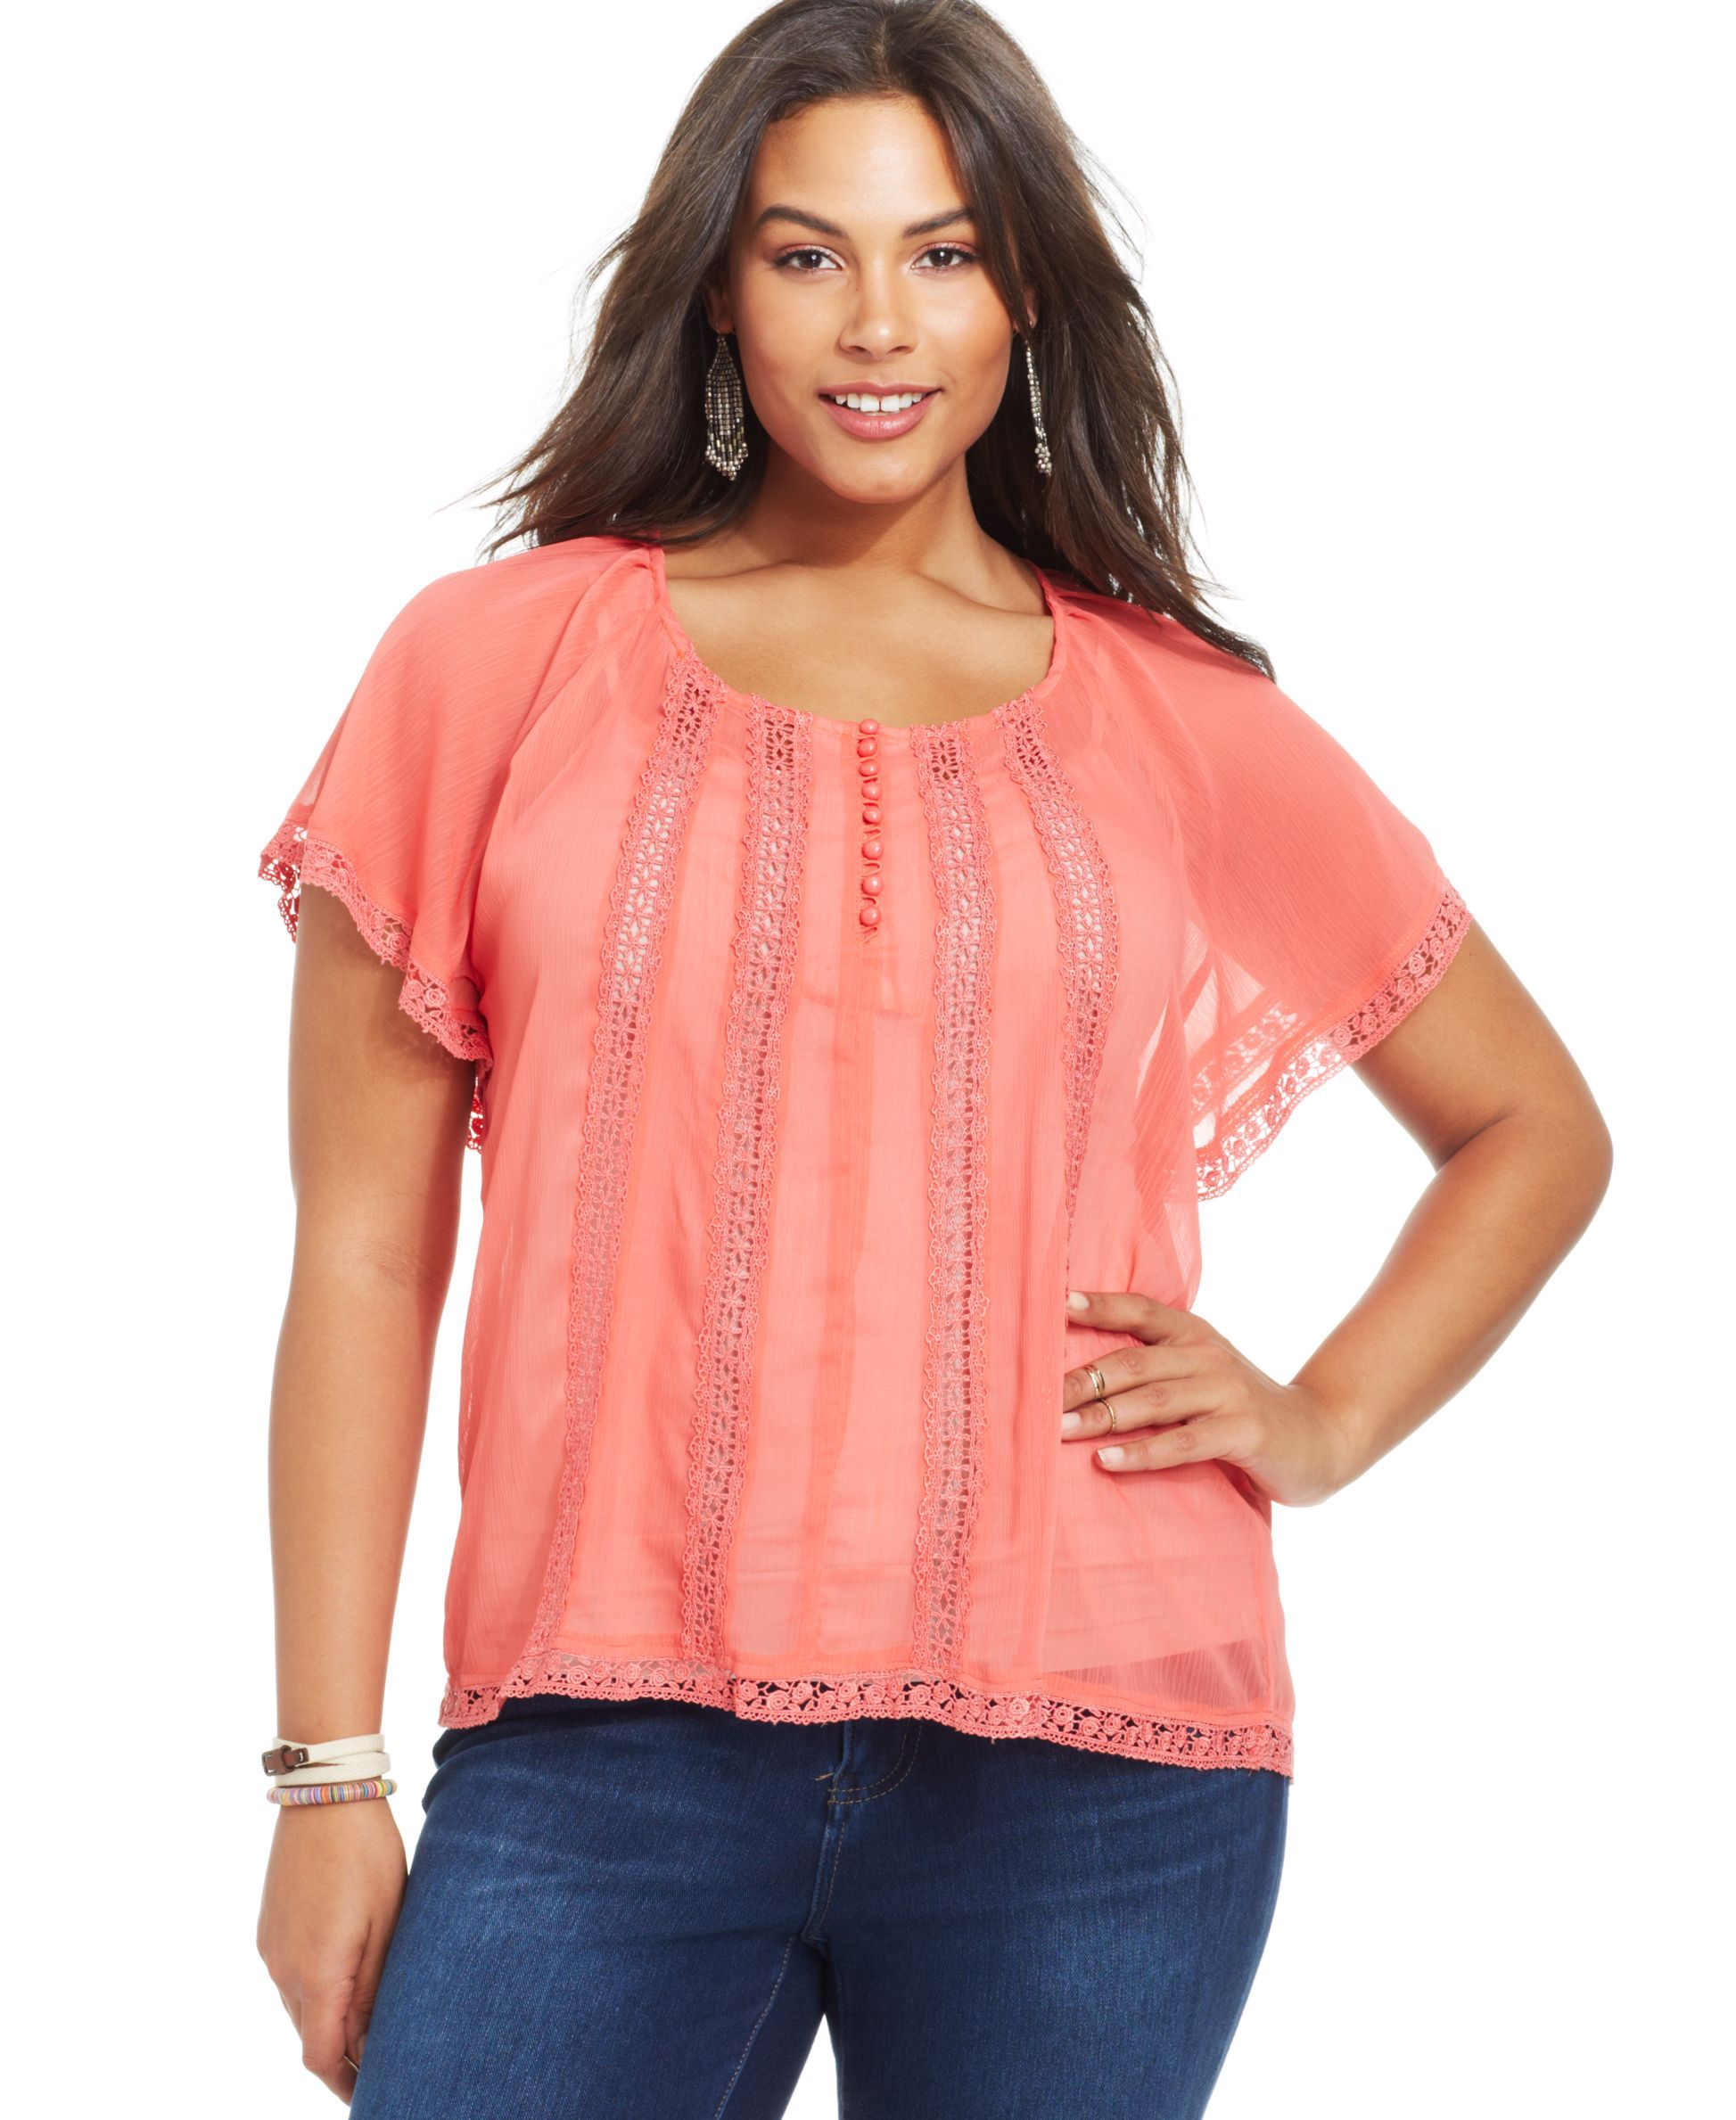 American Rag Plus Size Lace-Trim Chiffon Top